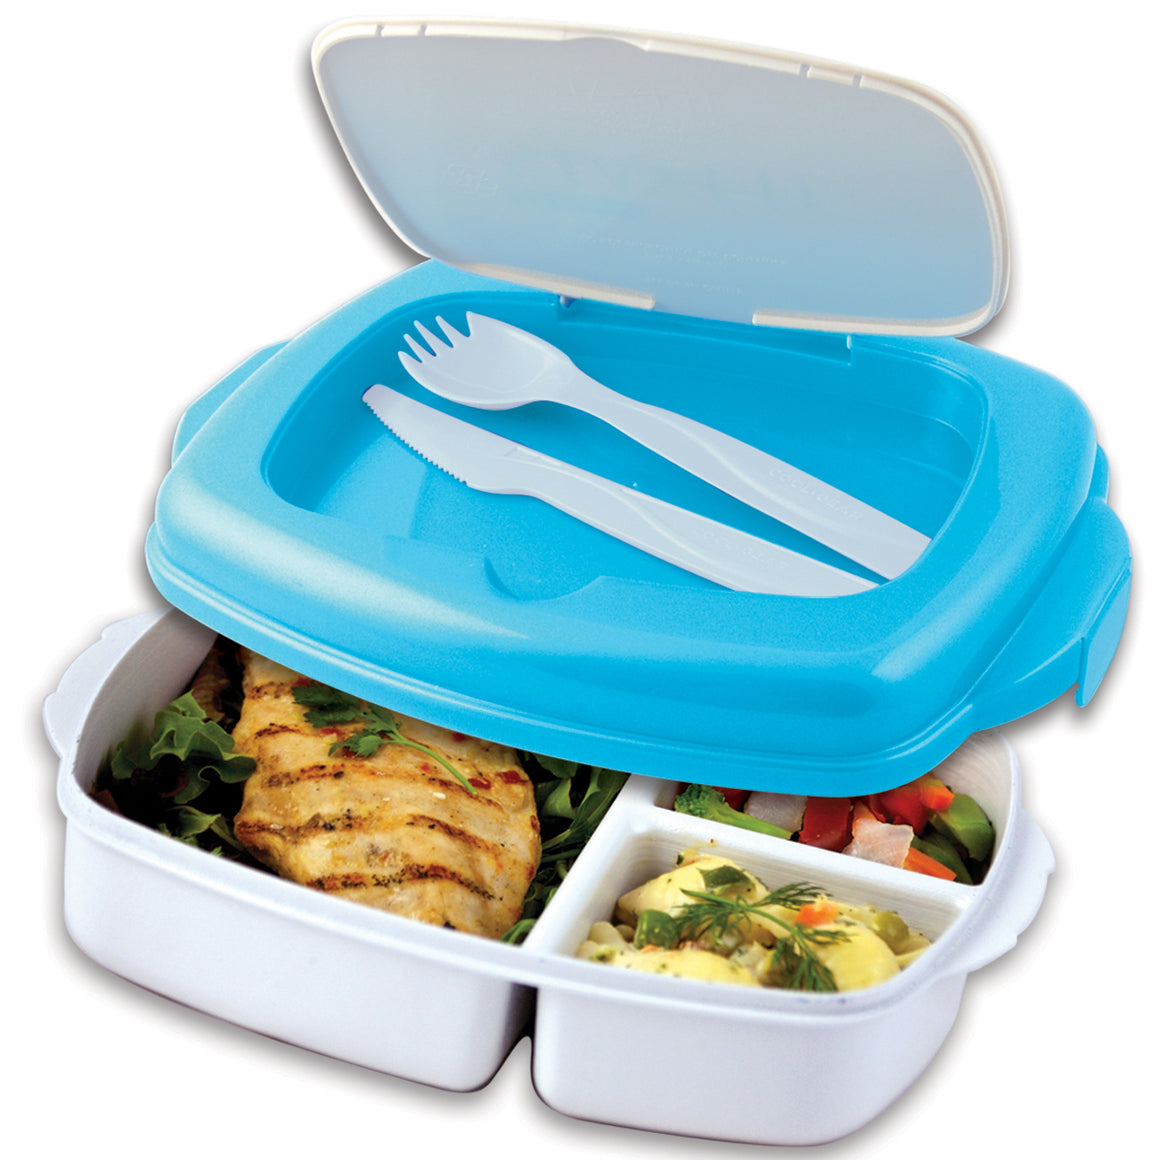 White, Blue Lunch 2 Go Food Container at Cool Gear Food Containers